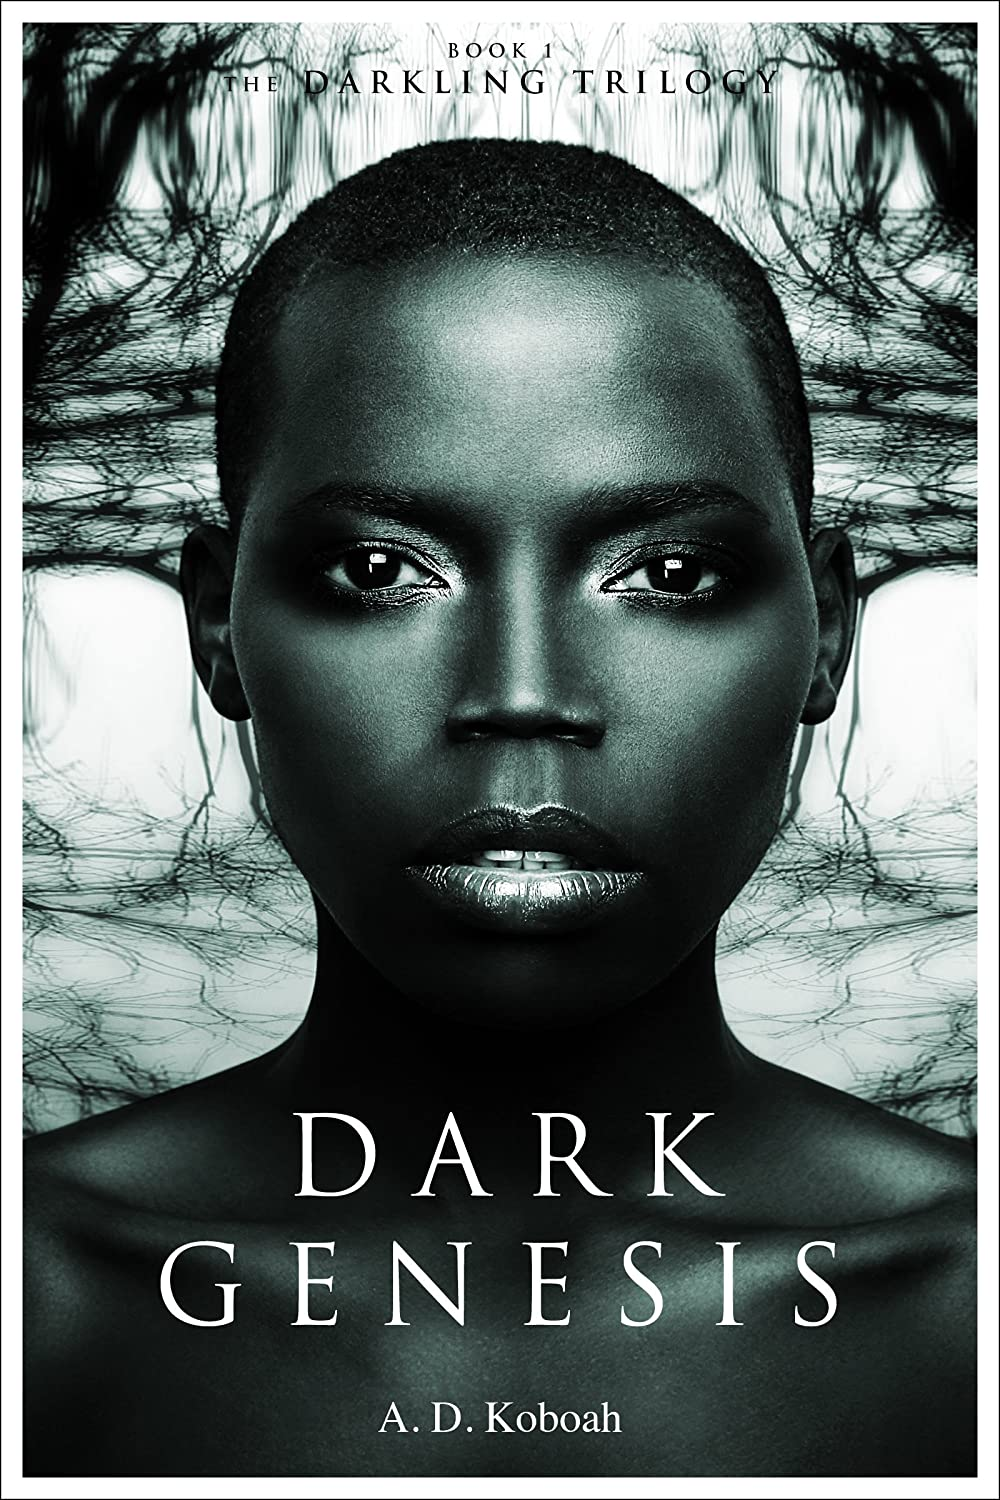 Dark Genesis (The Darkling Trilogy, Book 1) by A D Koboah